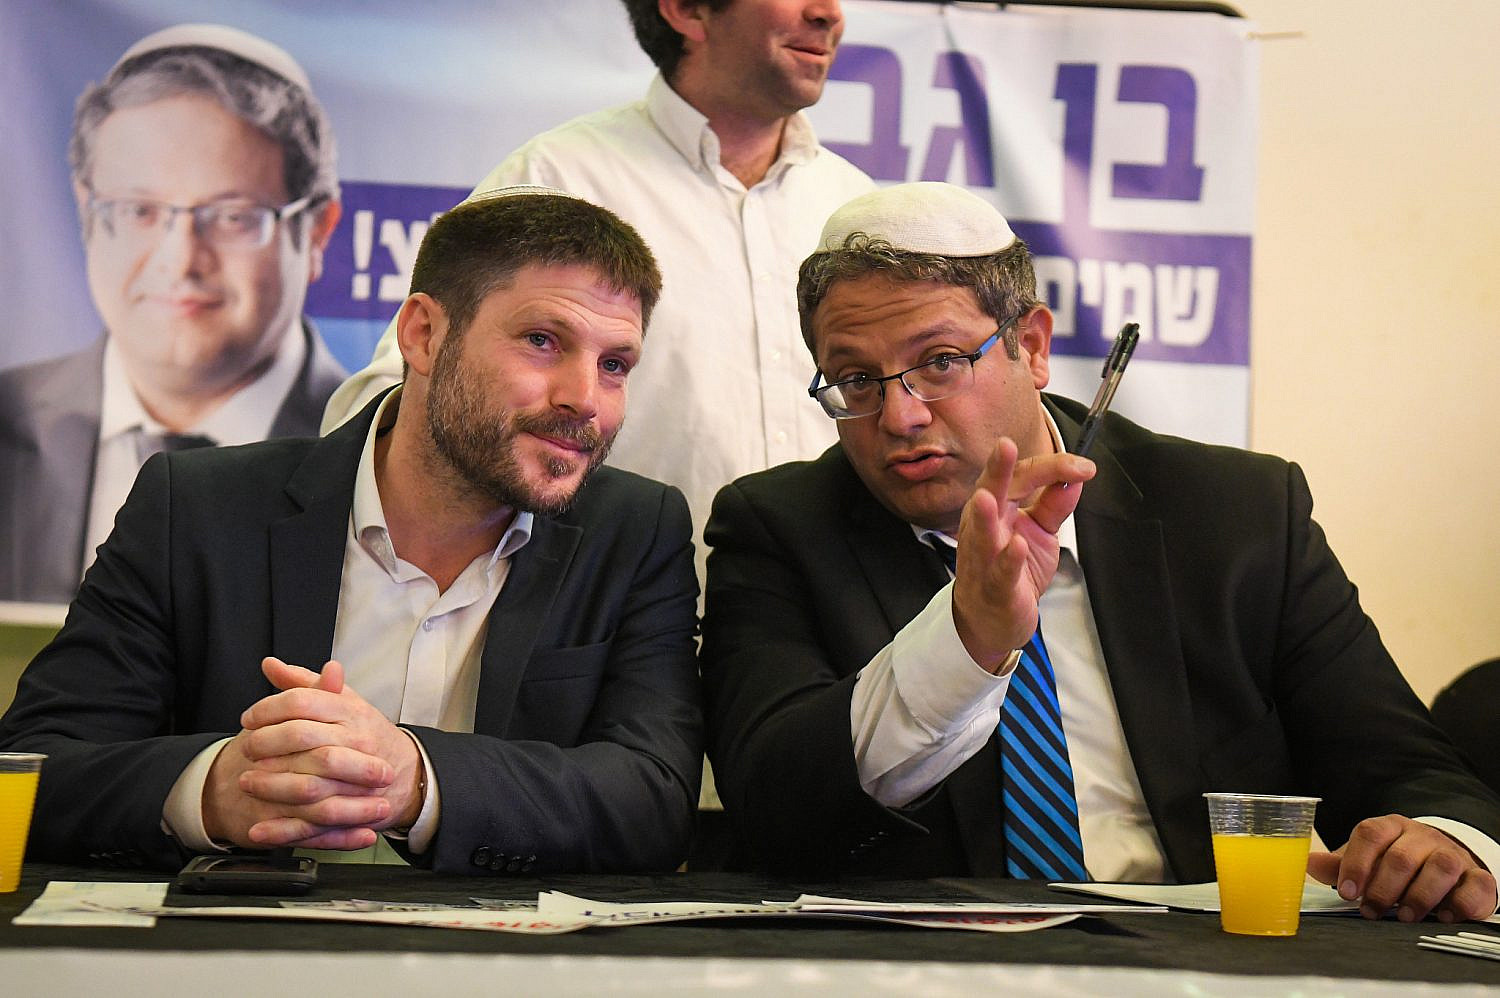 Otzma Yehudit party member Itamar Ben Gvir (R) speaks with Head of the National Union party MK Betzalel Smotrich during an election campaign event of Otzma Yehudit in Bat Yam, April 6, 2019. (Flash90)